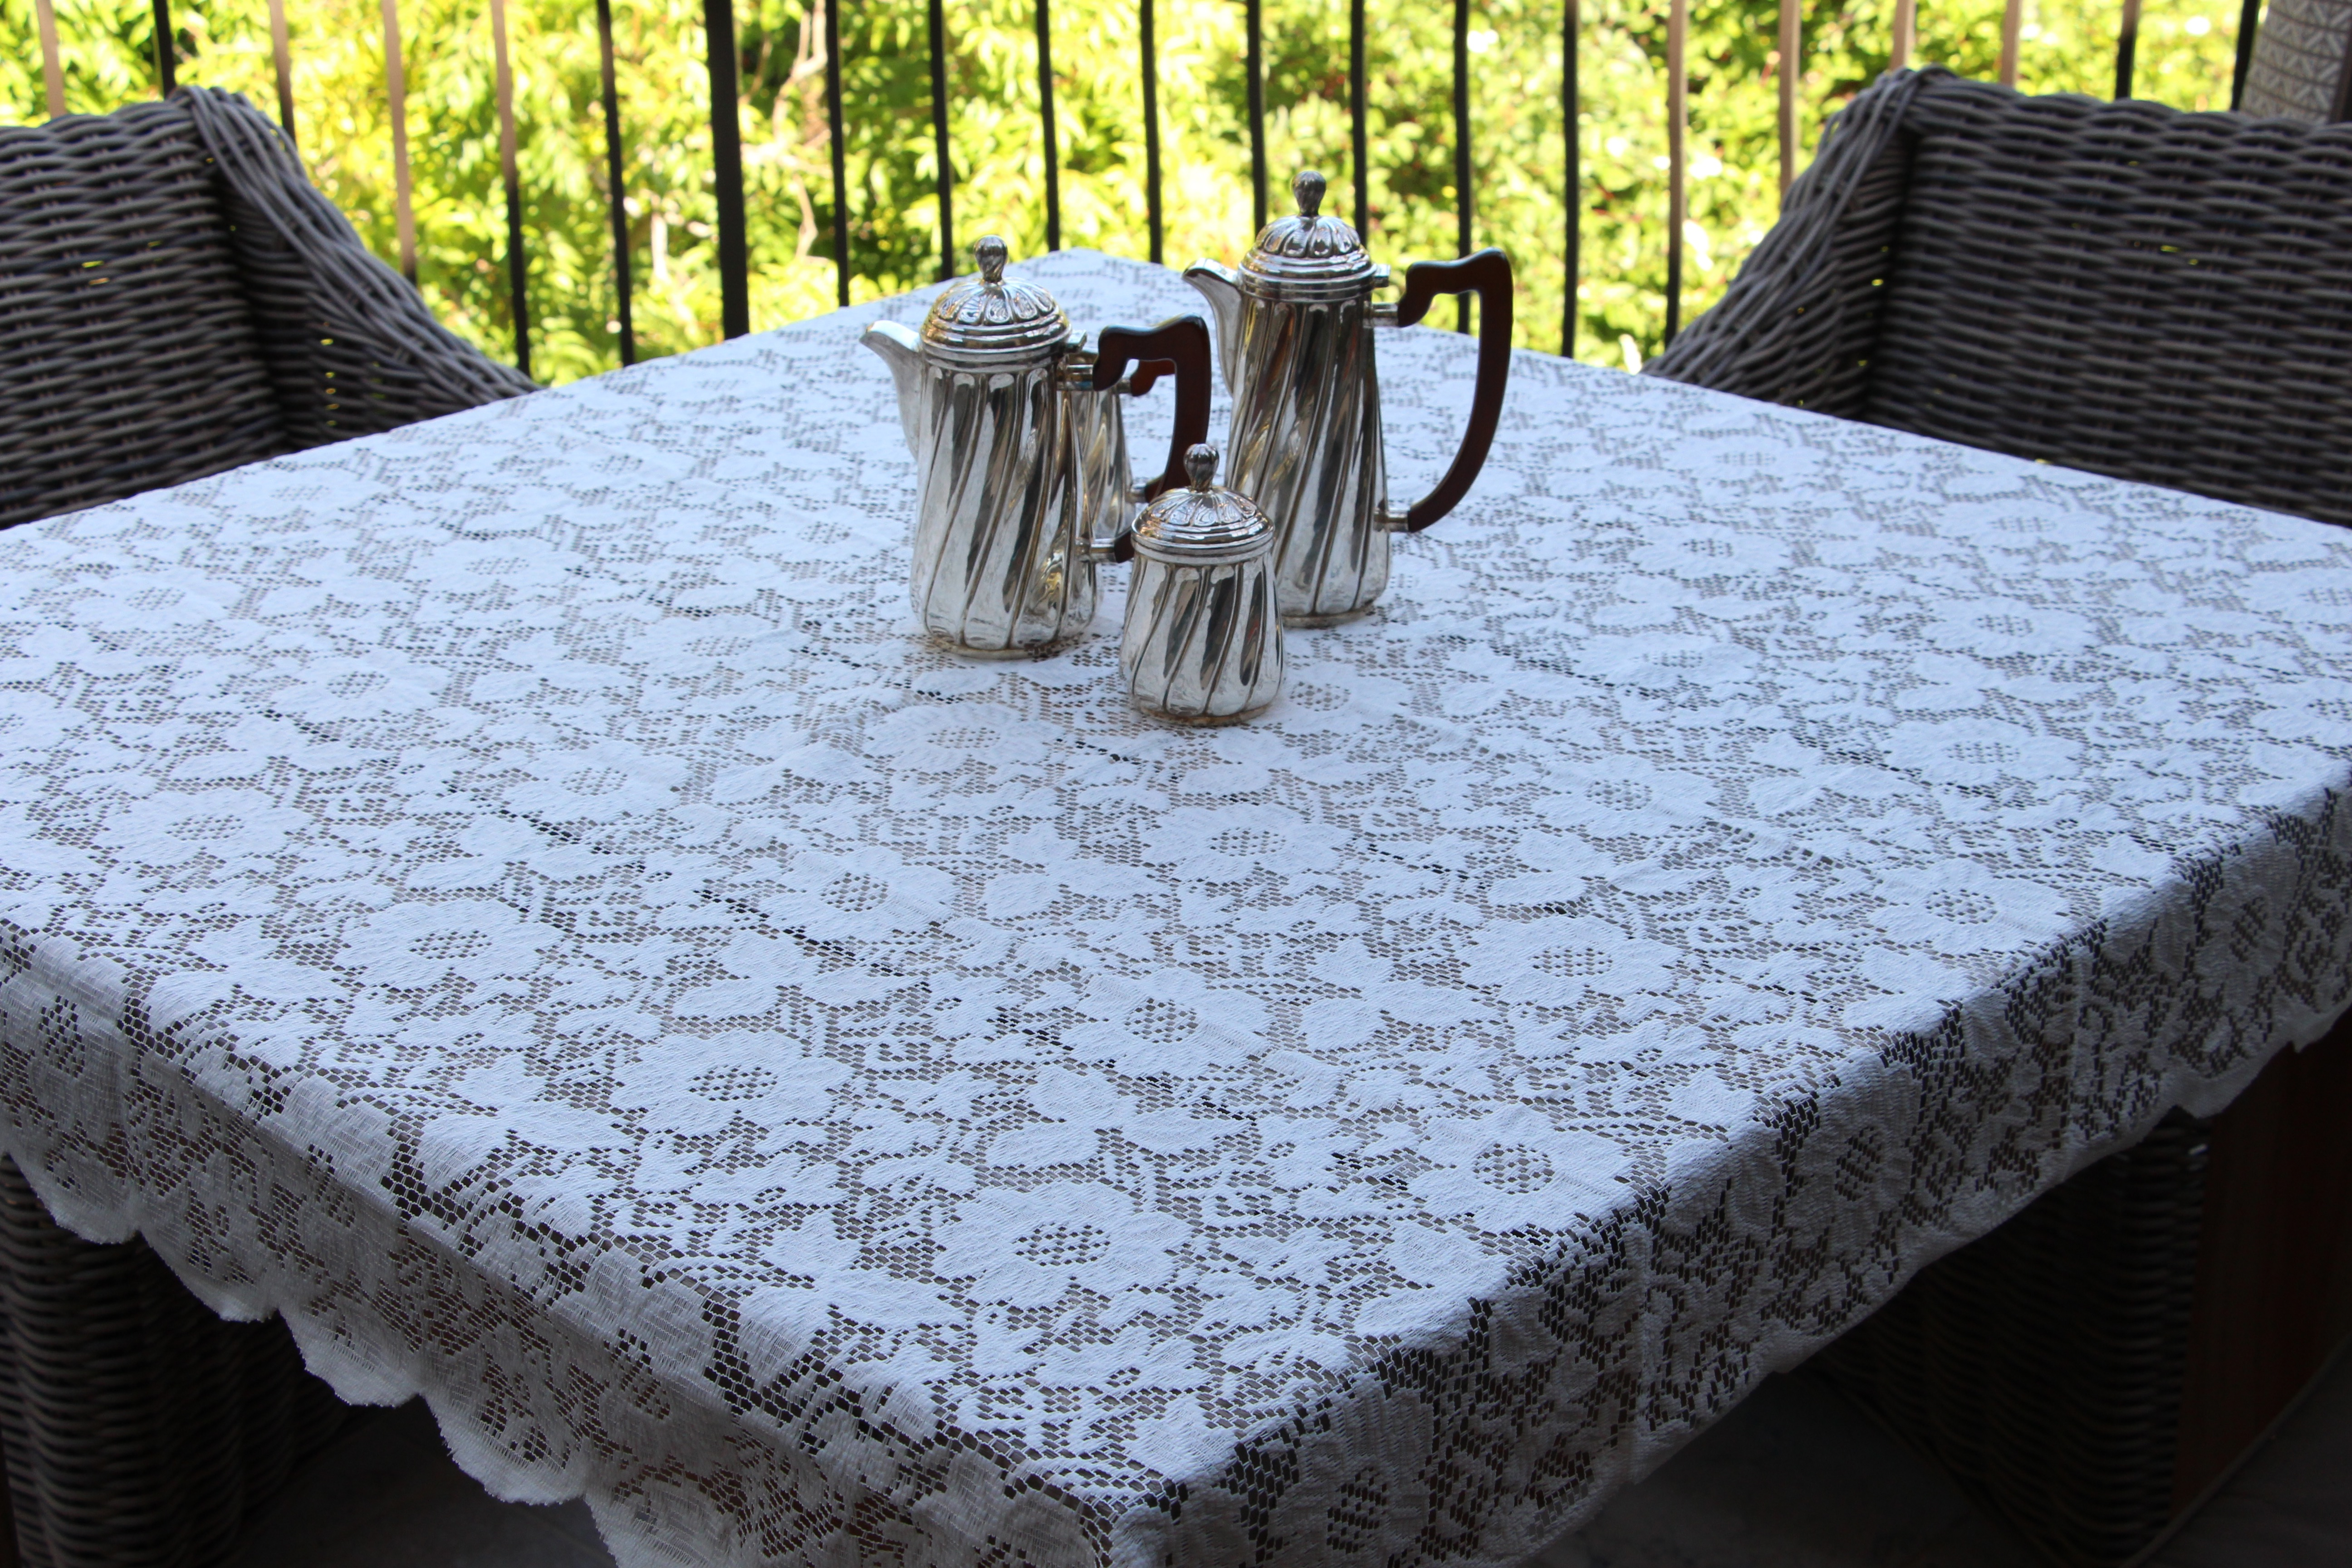 Attractive Lace Tablecloth On Teak Table